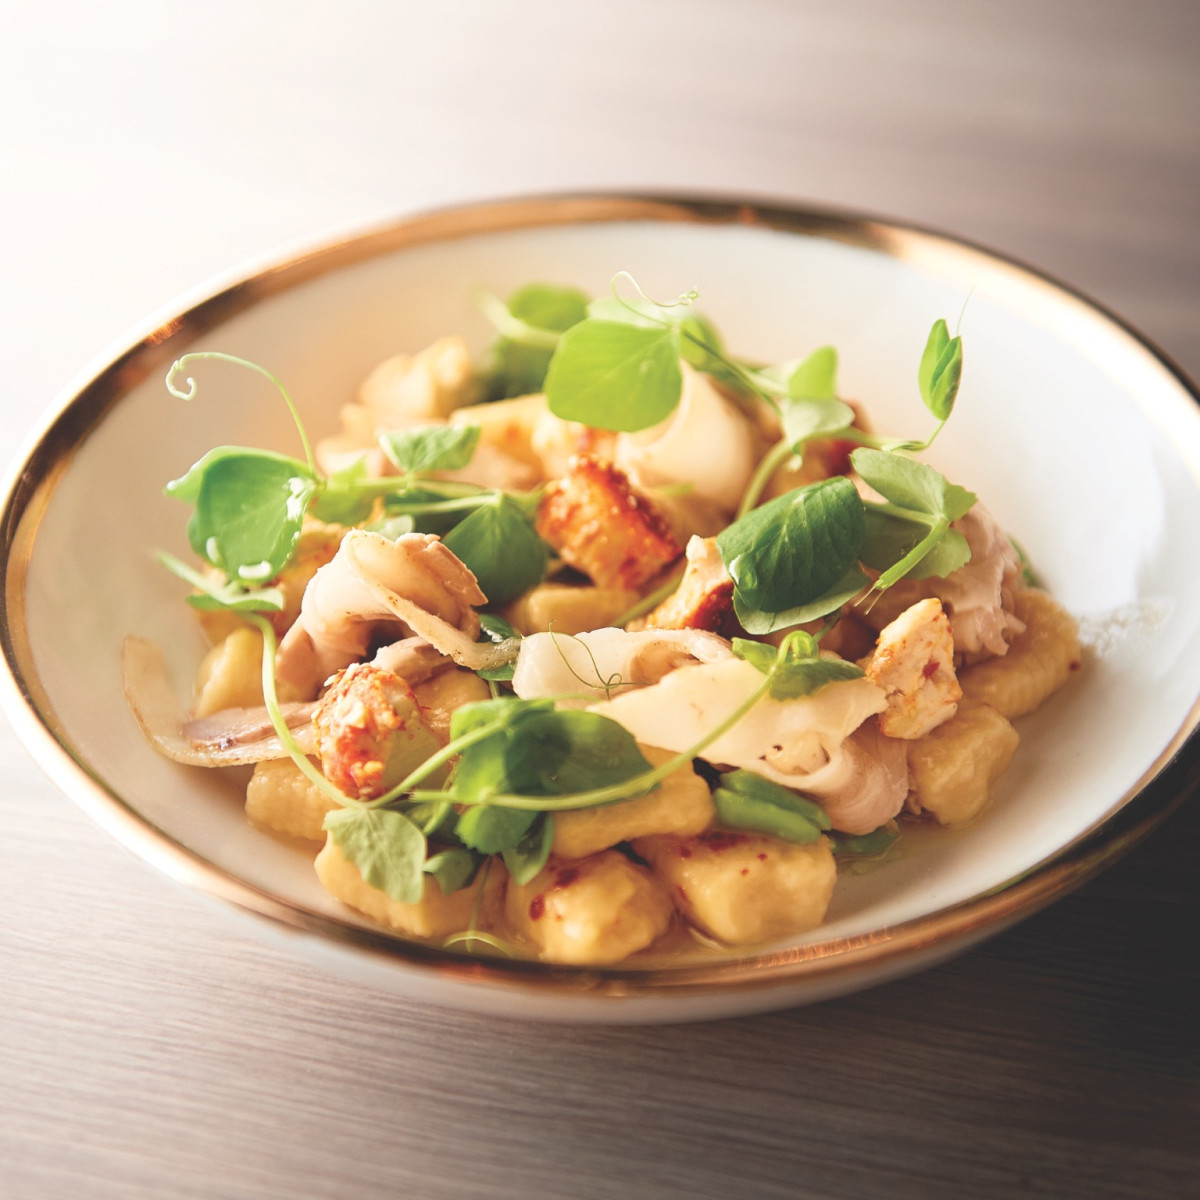 The Pass gnocchi